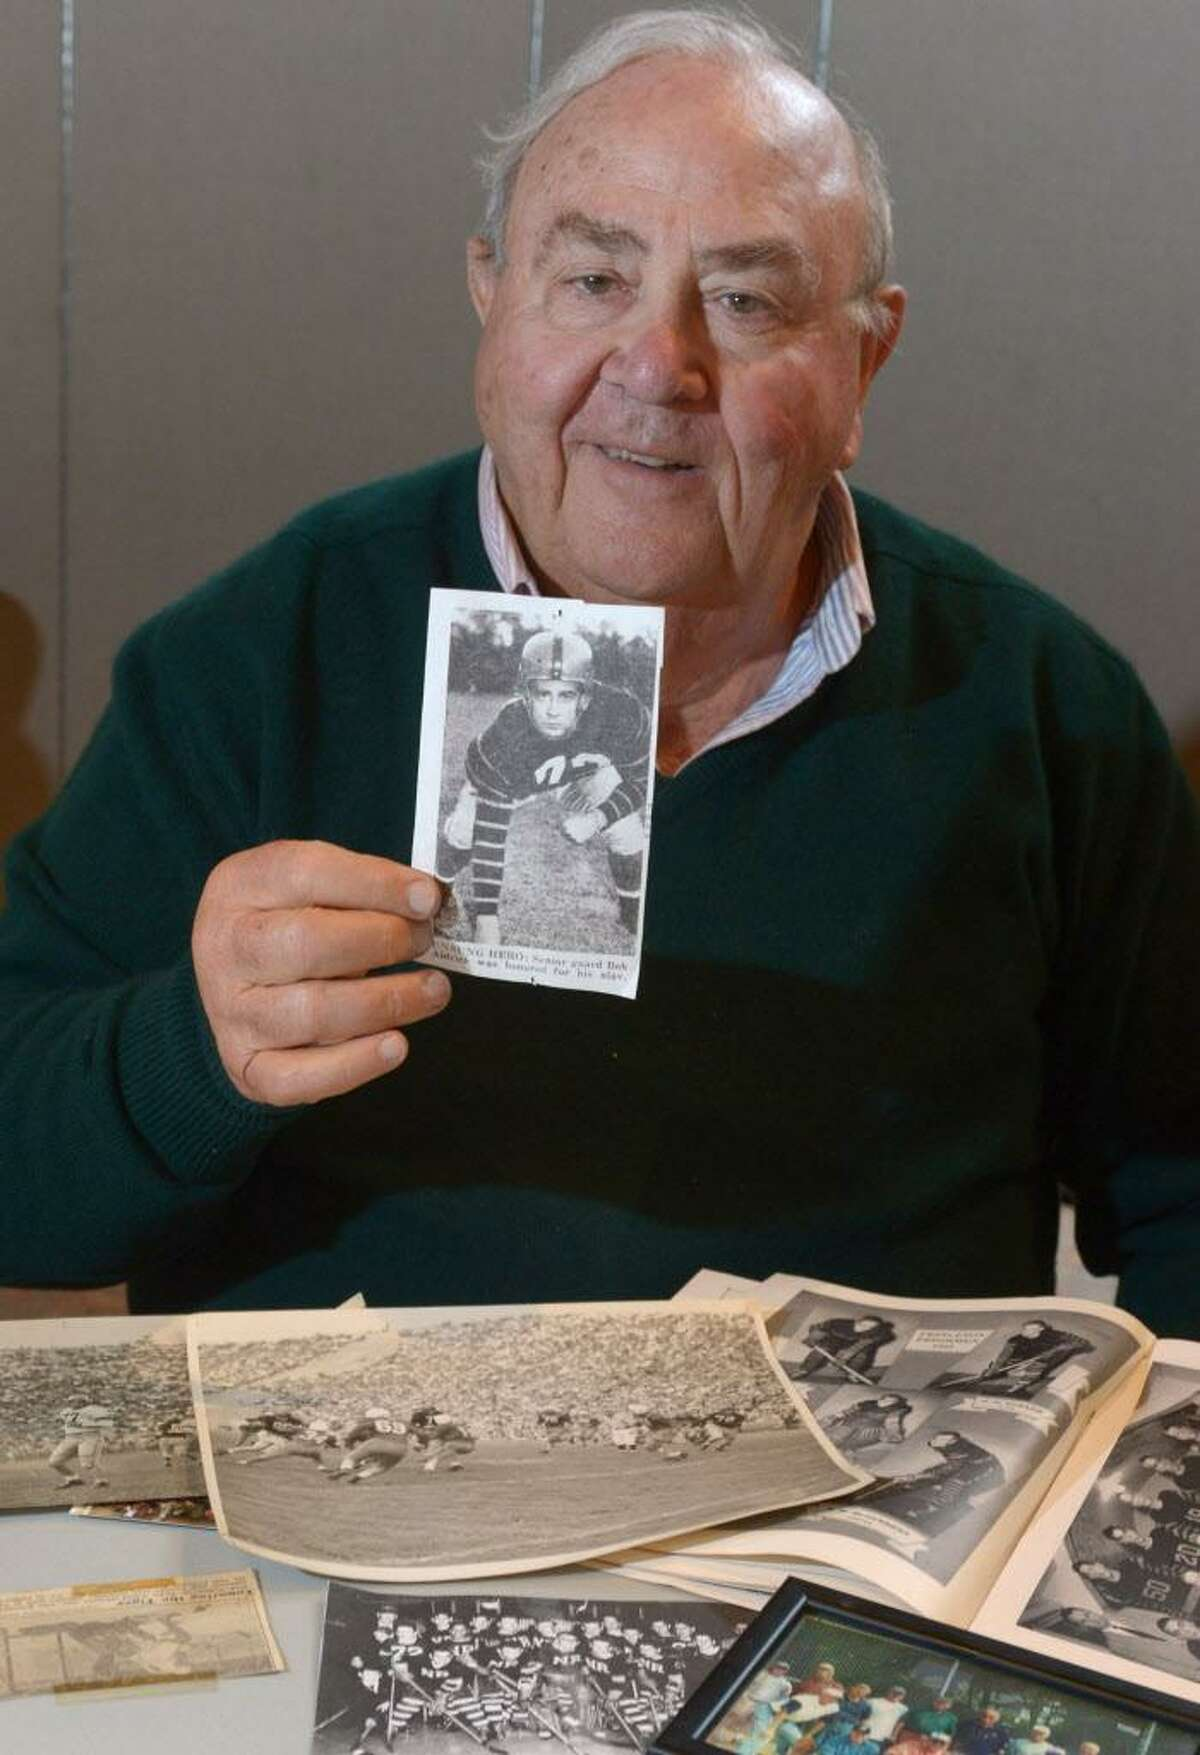 Norwalk resident Bob Aldrich, now in his 80s, reminisces about his days as a Princeton University hockey and football player, Wednesday, April 17, 2017, at the United Church of Rowayton in Norwalk, Conn.